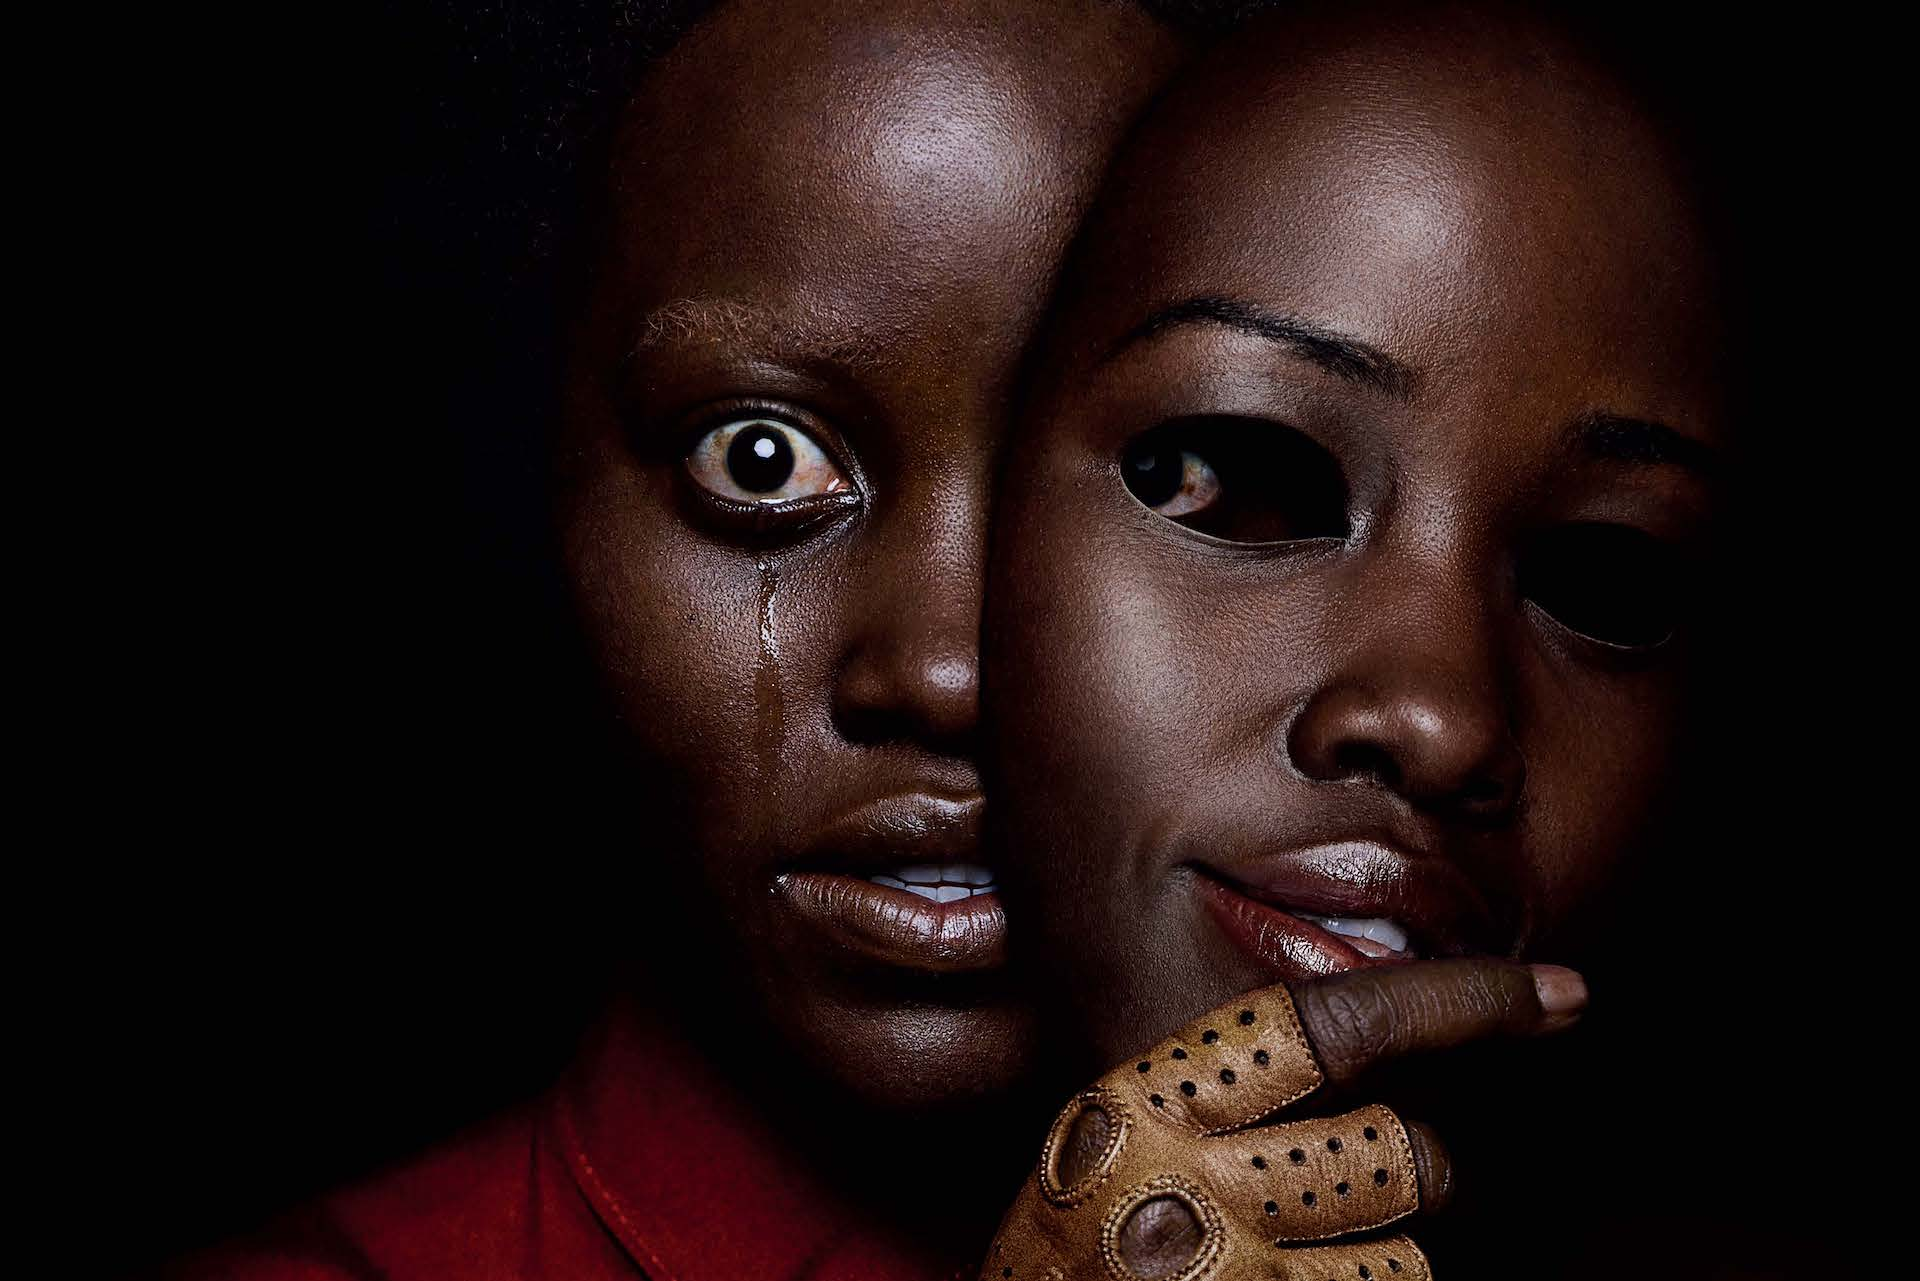 US Review: Jordan Peele Cements Reputation with Humorous, Horrific Follow-up to Get Out